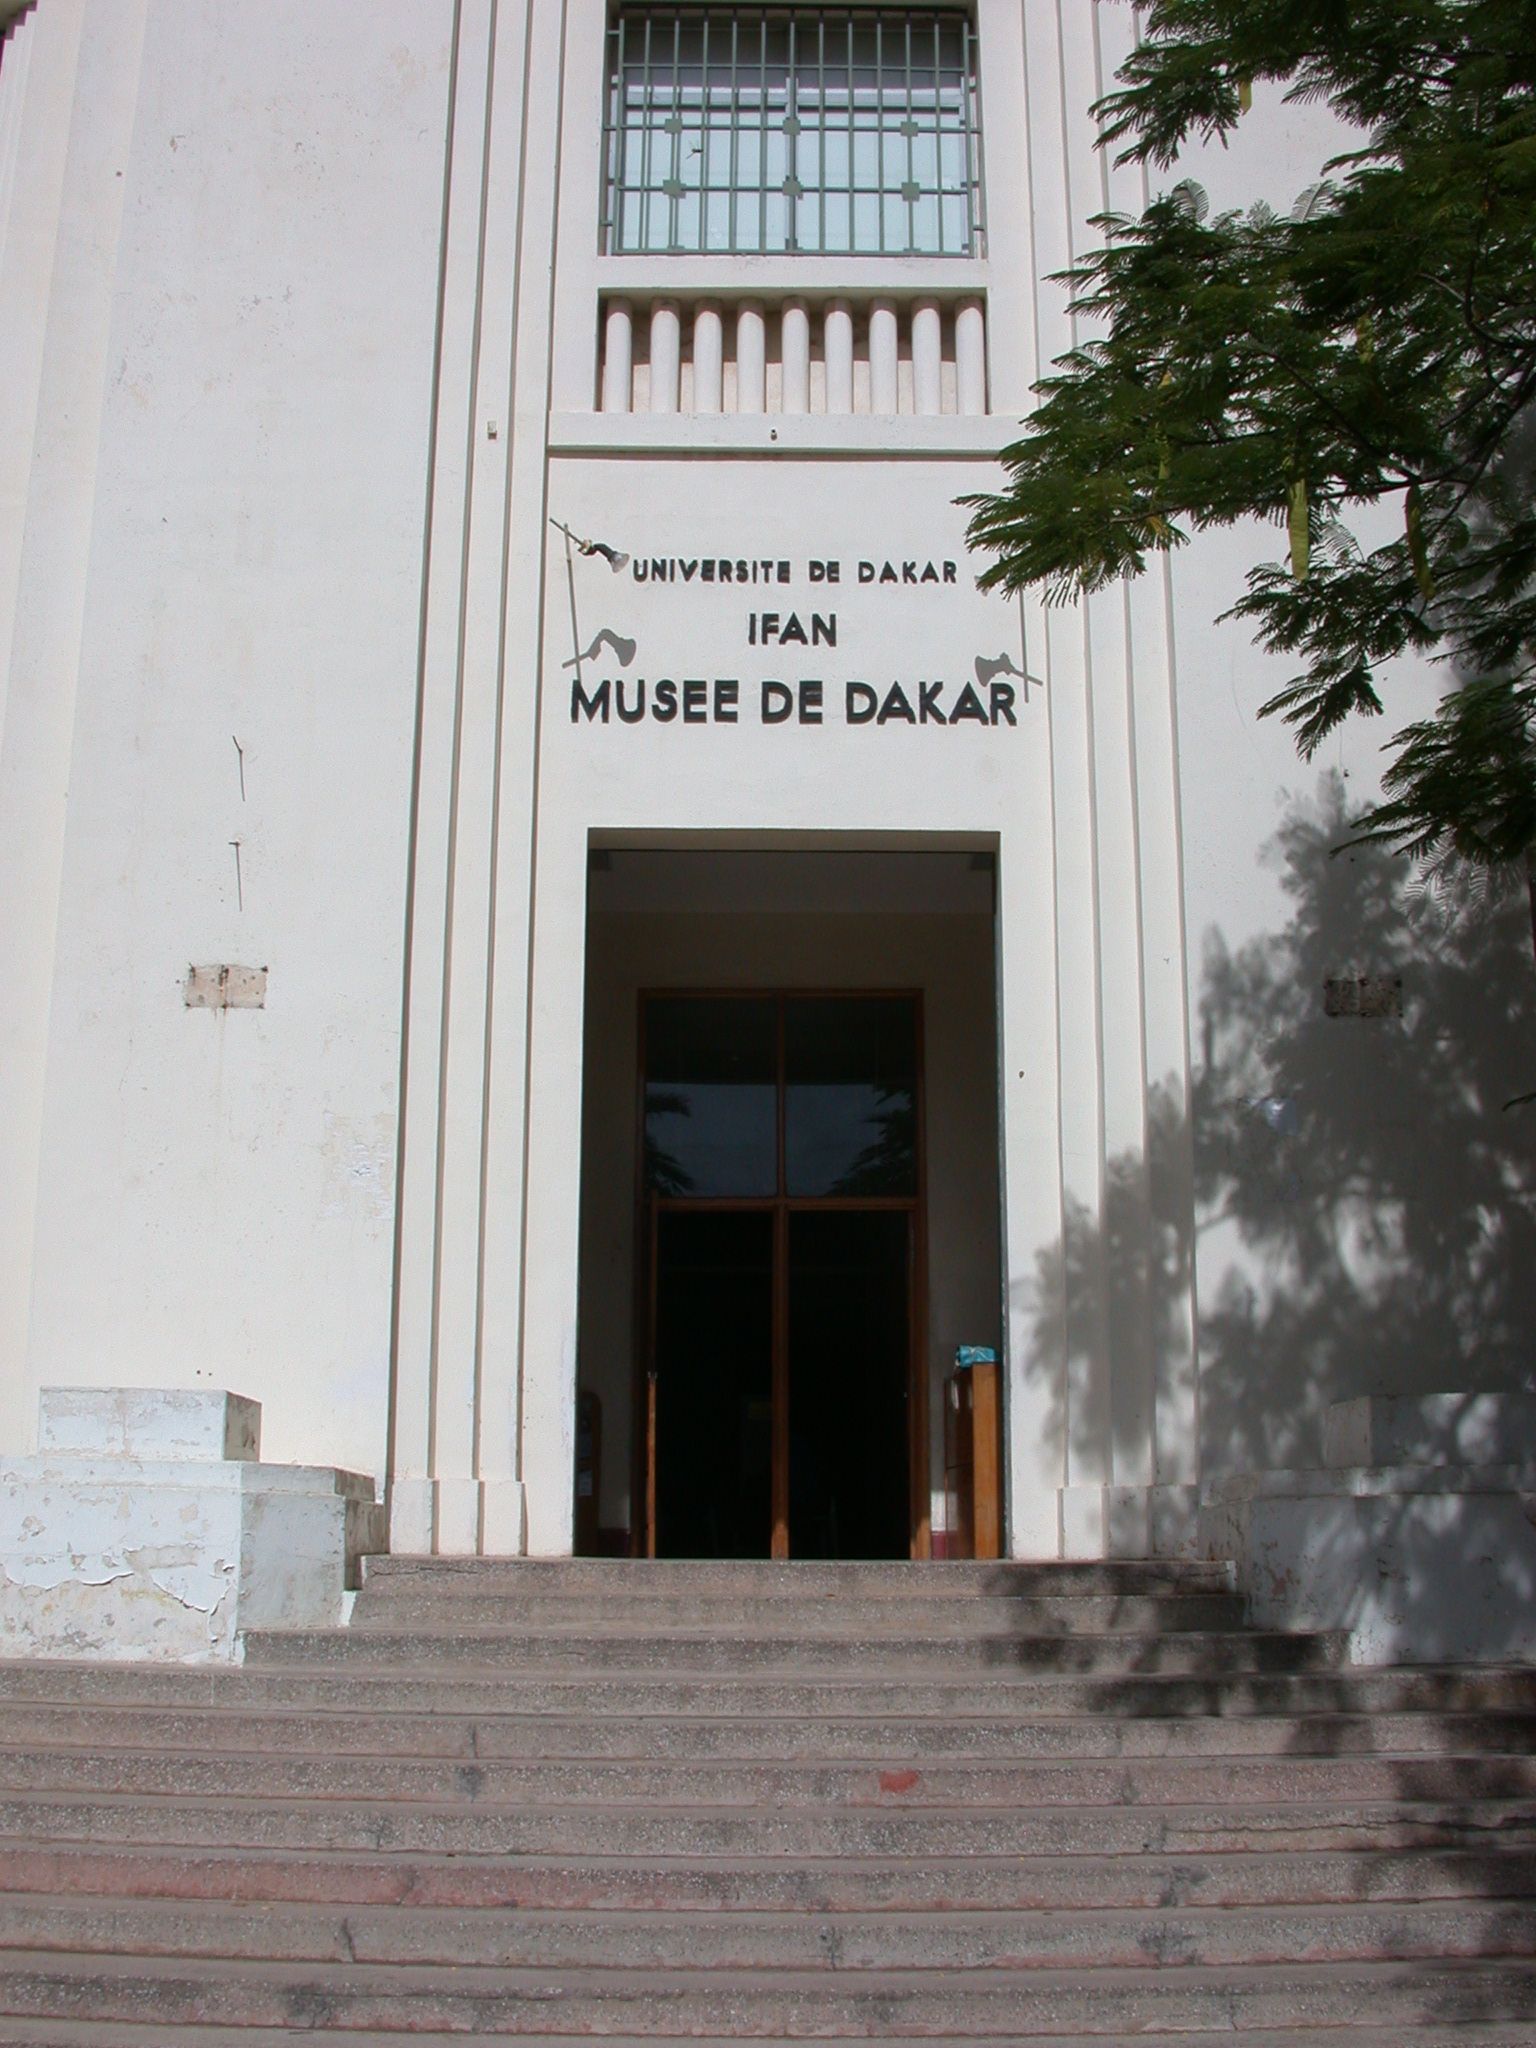 Entrance of Institut Fondamental de l Afrique Noire Museum, IFAN, Dakar, Senegal